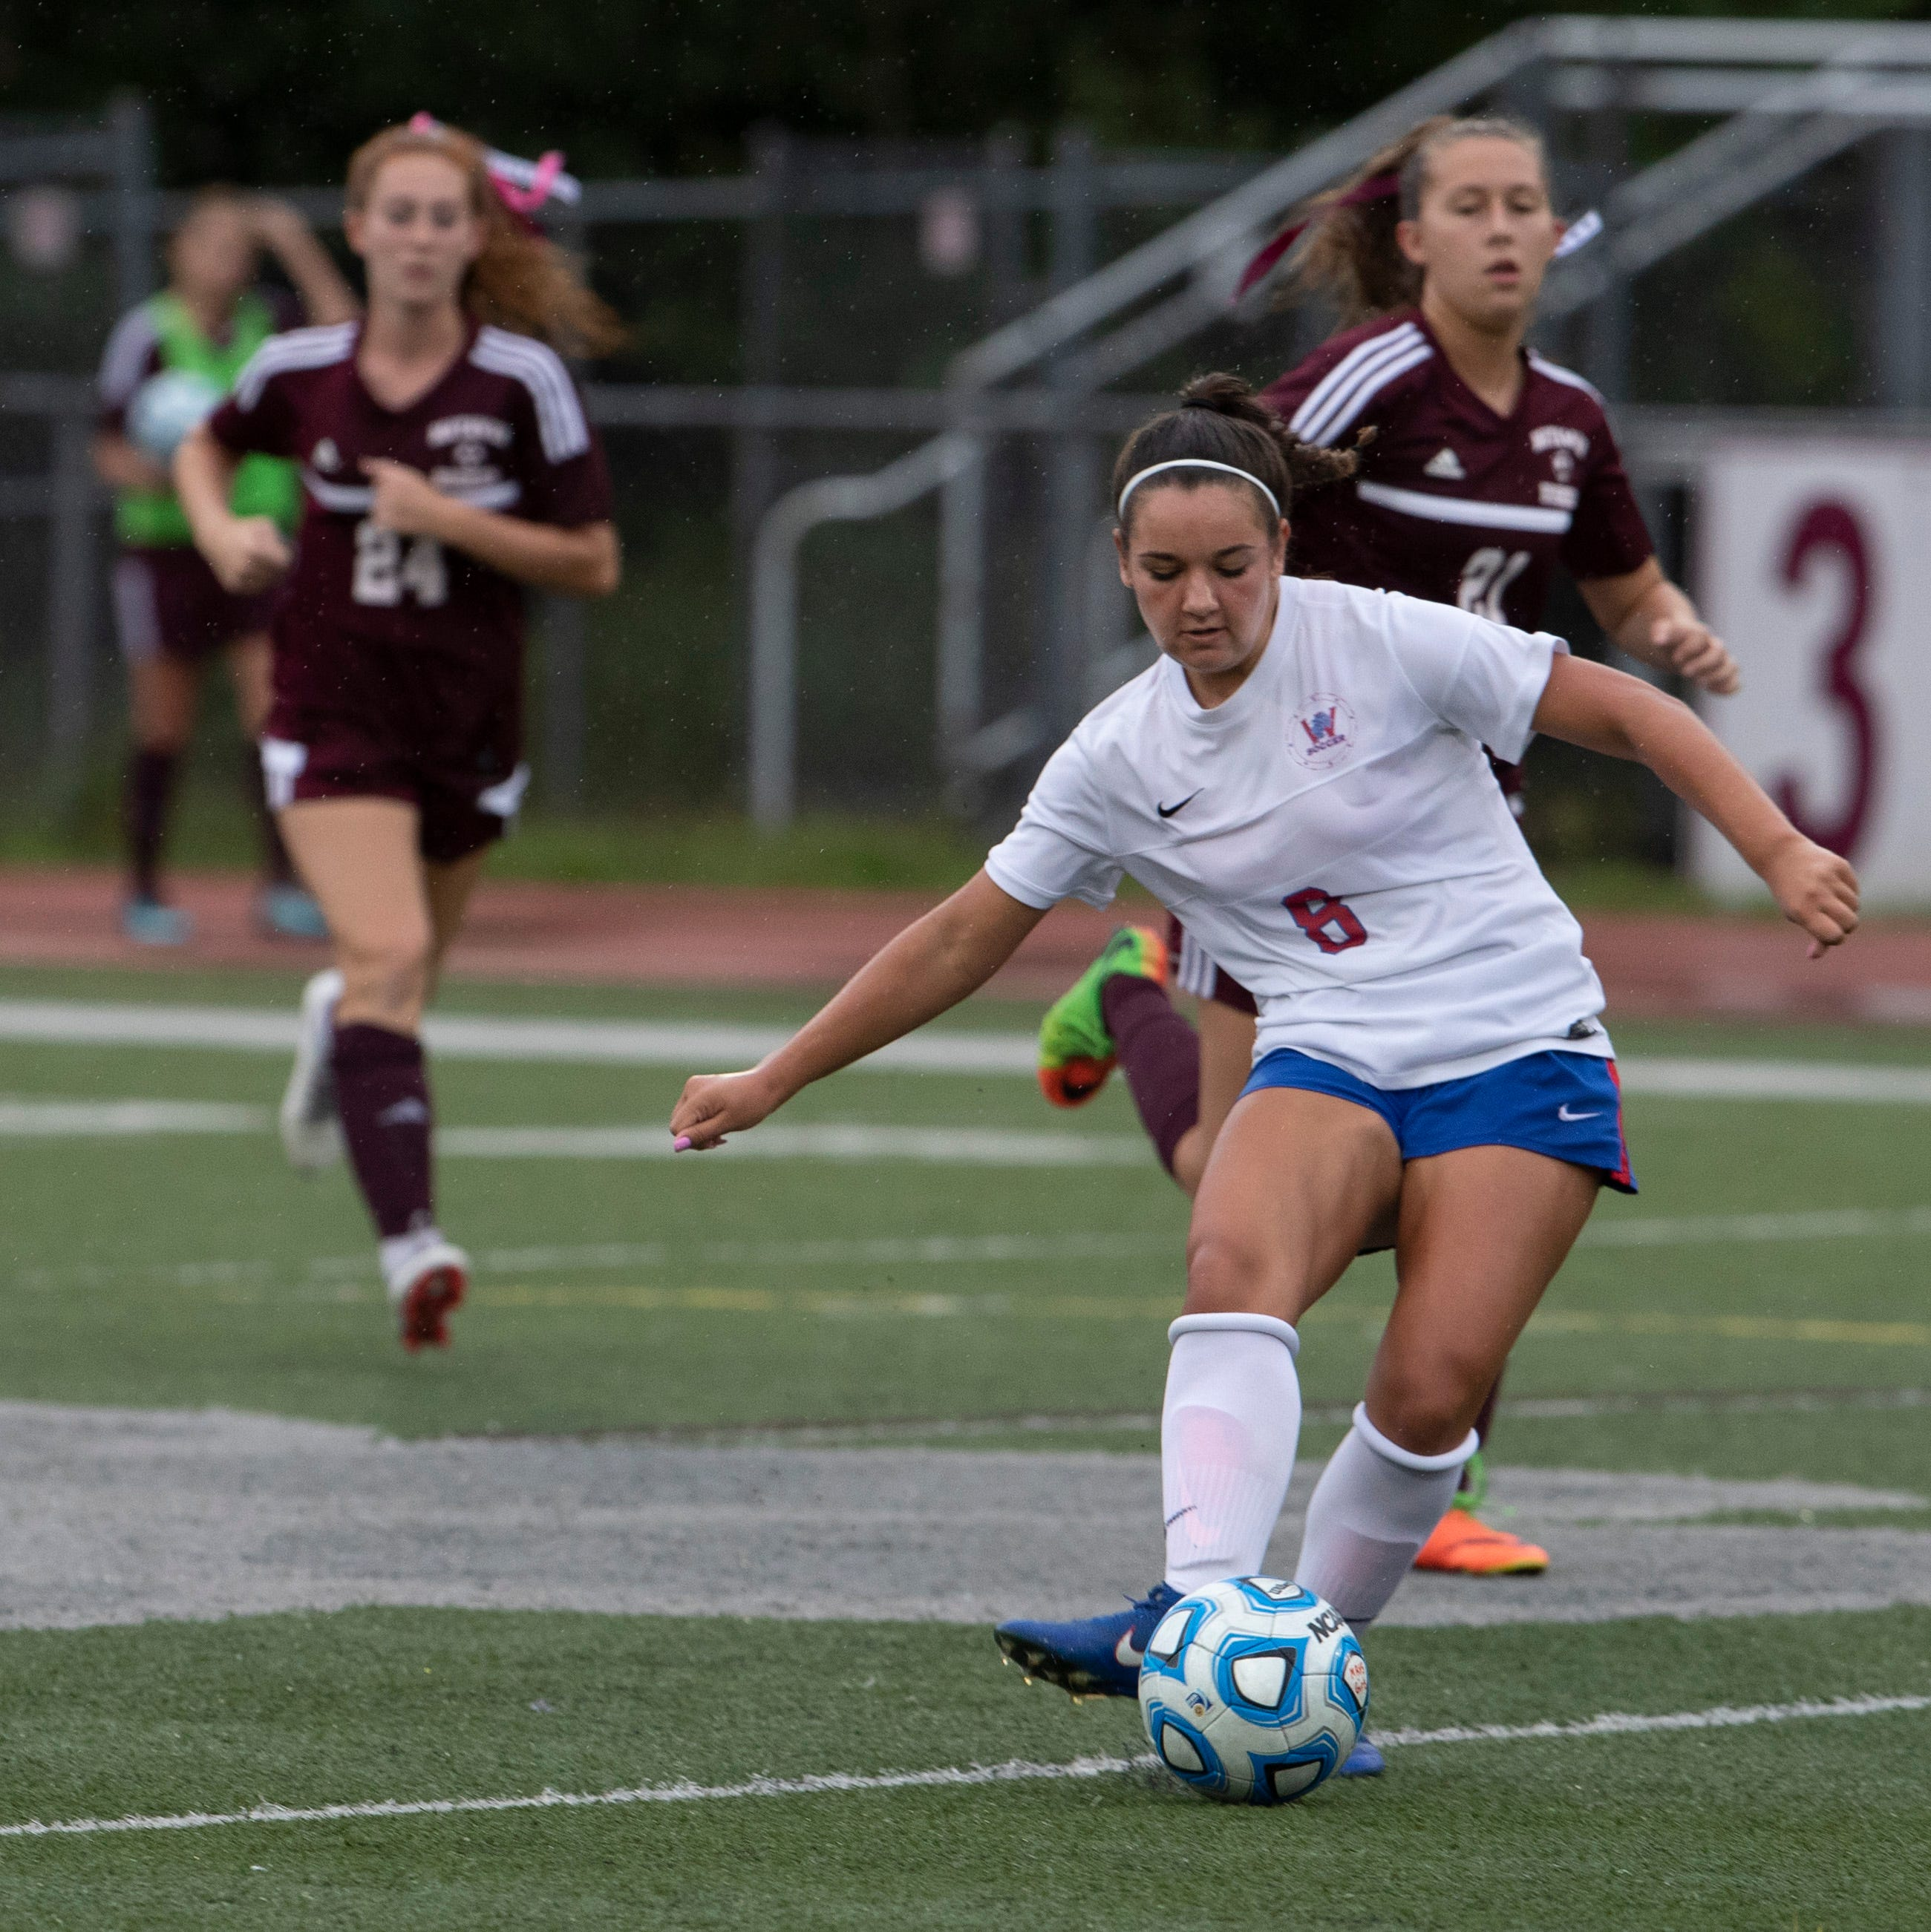 NJ Girls Soccer: Four new teams takeover Shore Conference rankings